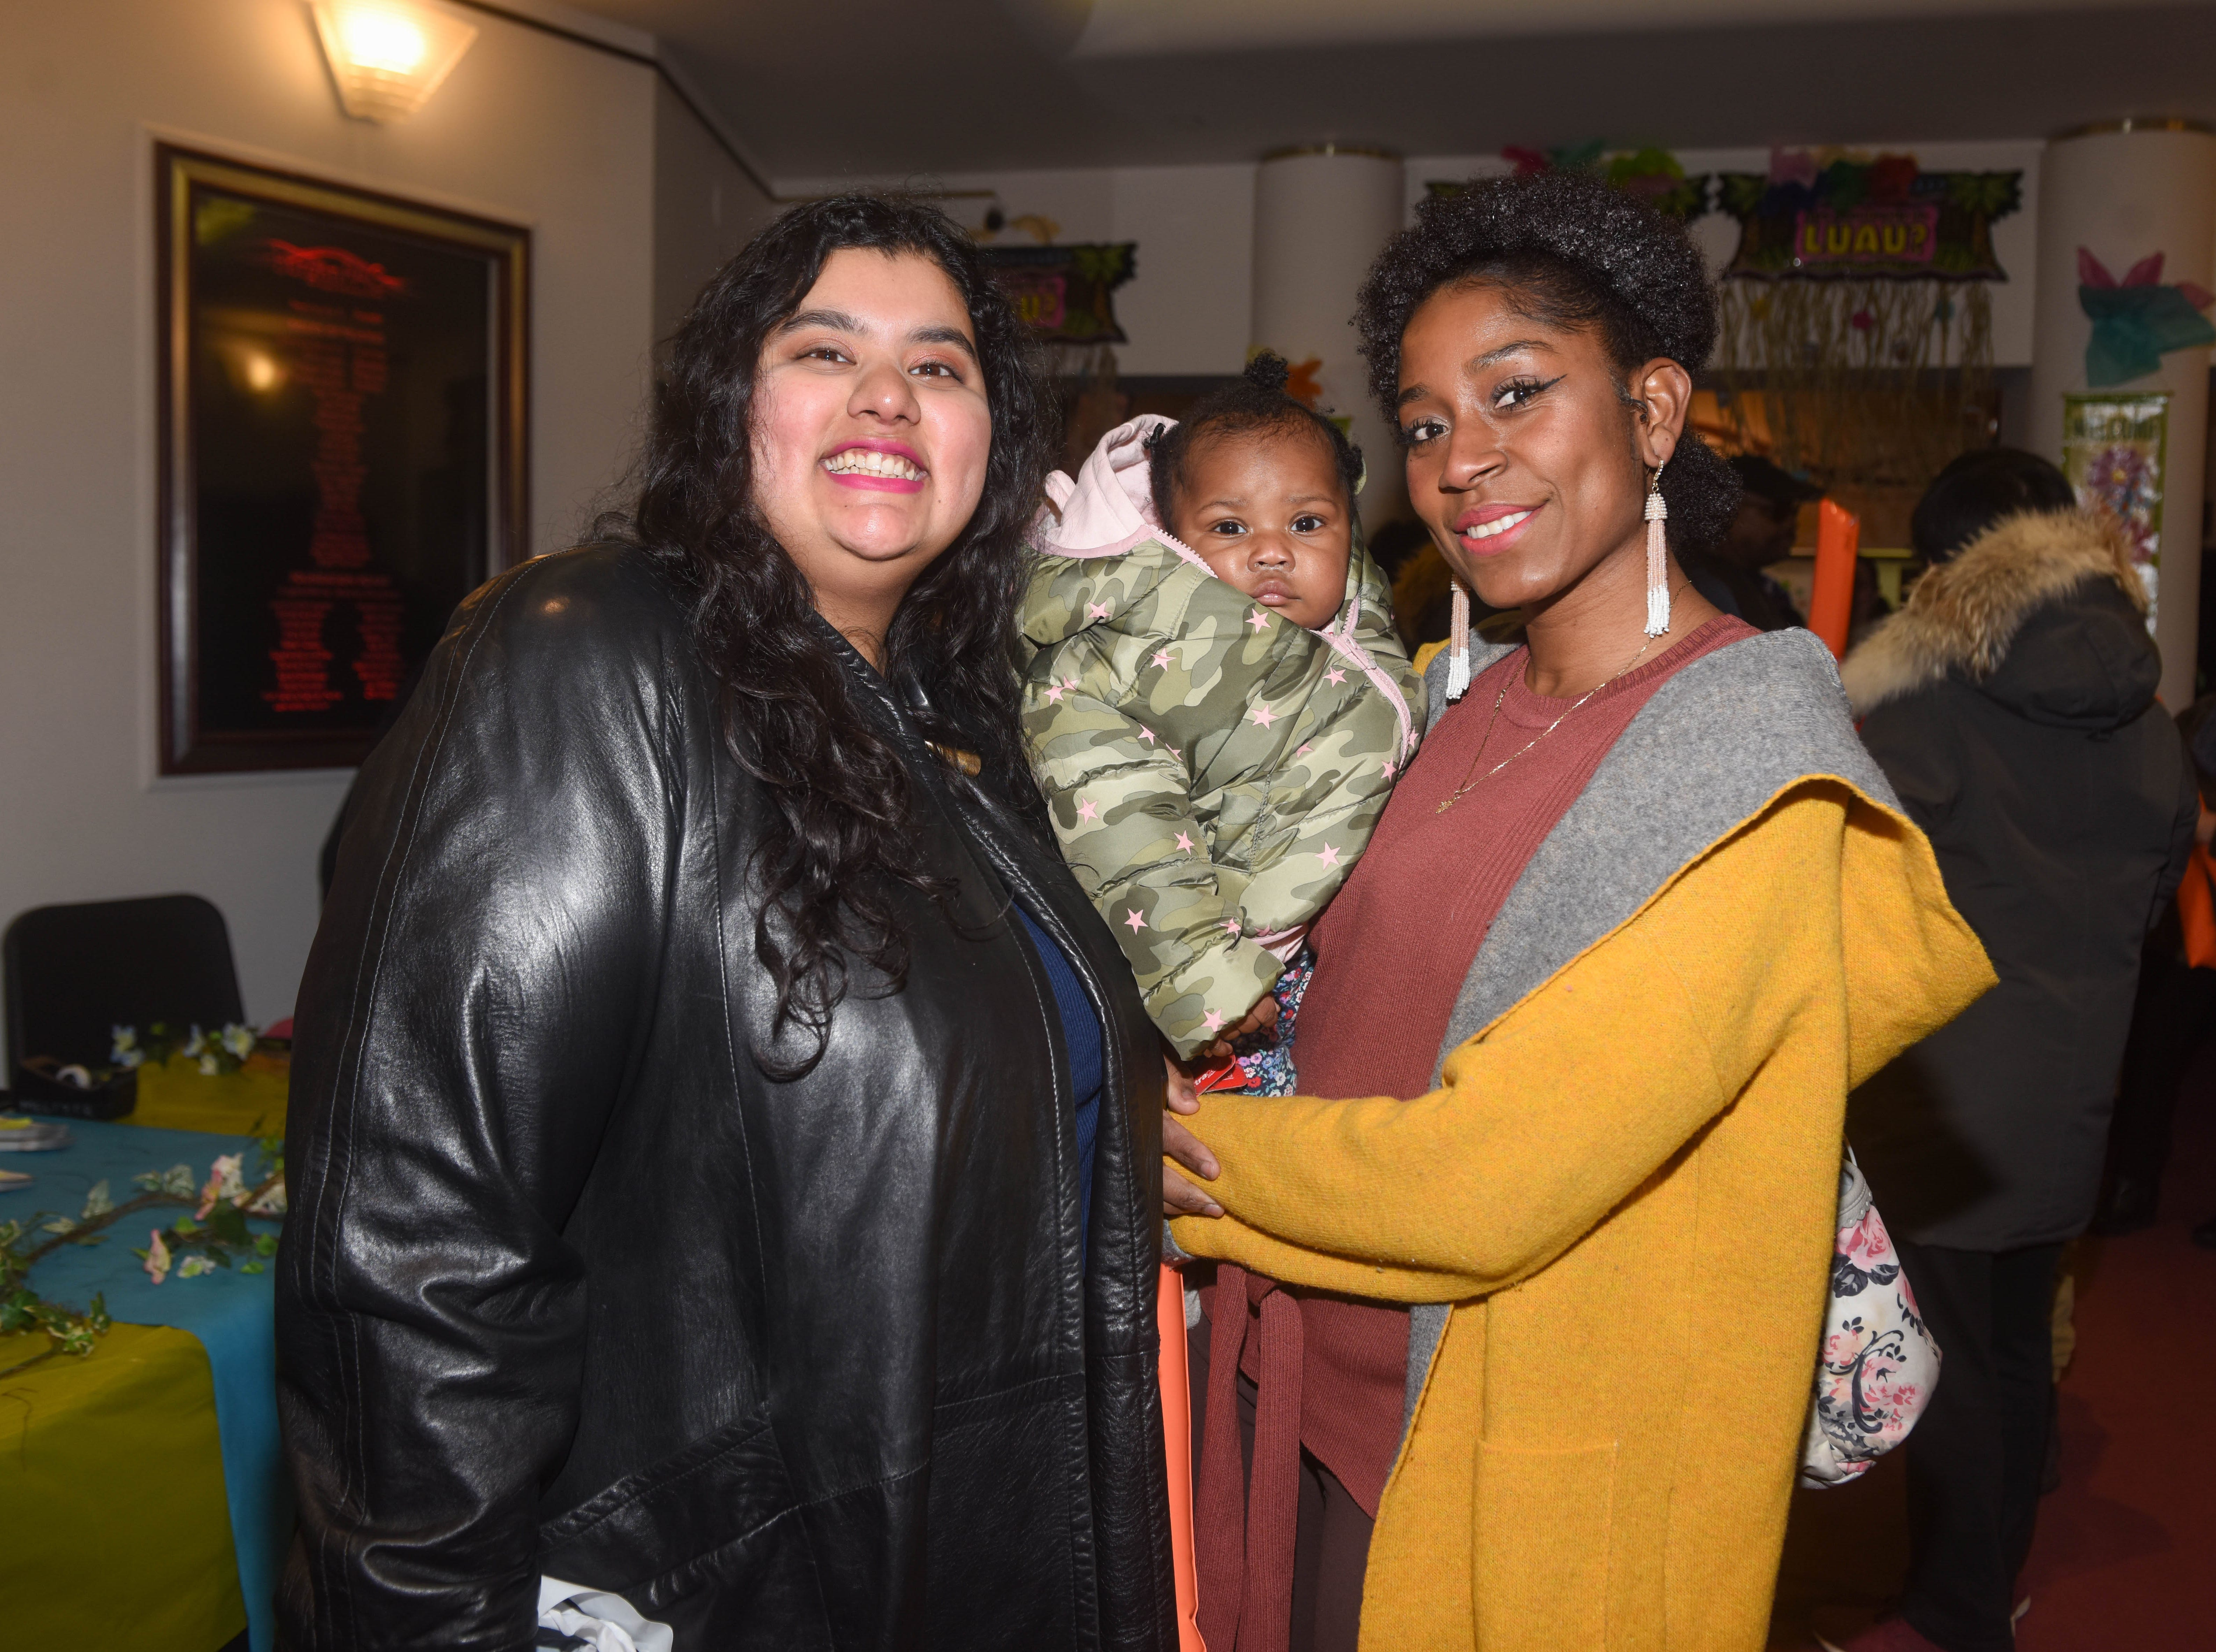 Aurora Ali, London and Brittney Placide. The 2019 Englewood Idol was held at bergenPAC theater. The singing competition is open to any high school student who currently lives or goes to school in Englewood, NJ. This years winner was Genesis Capellan. 01/11/2019